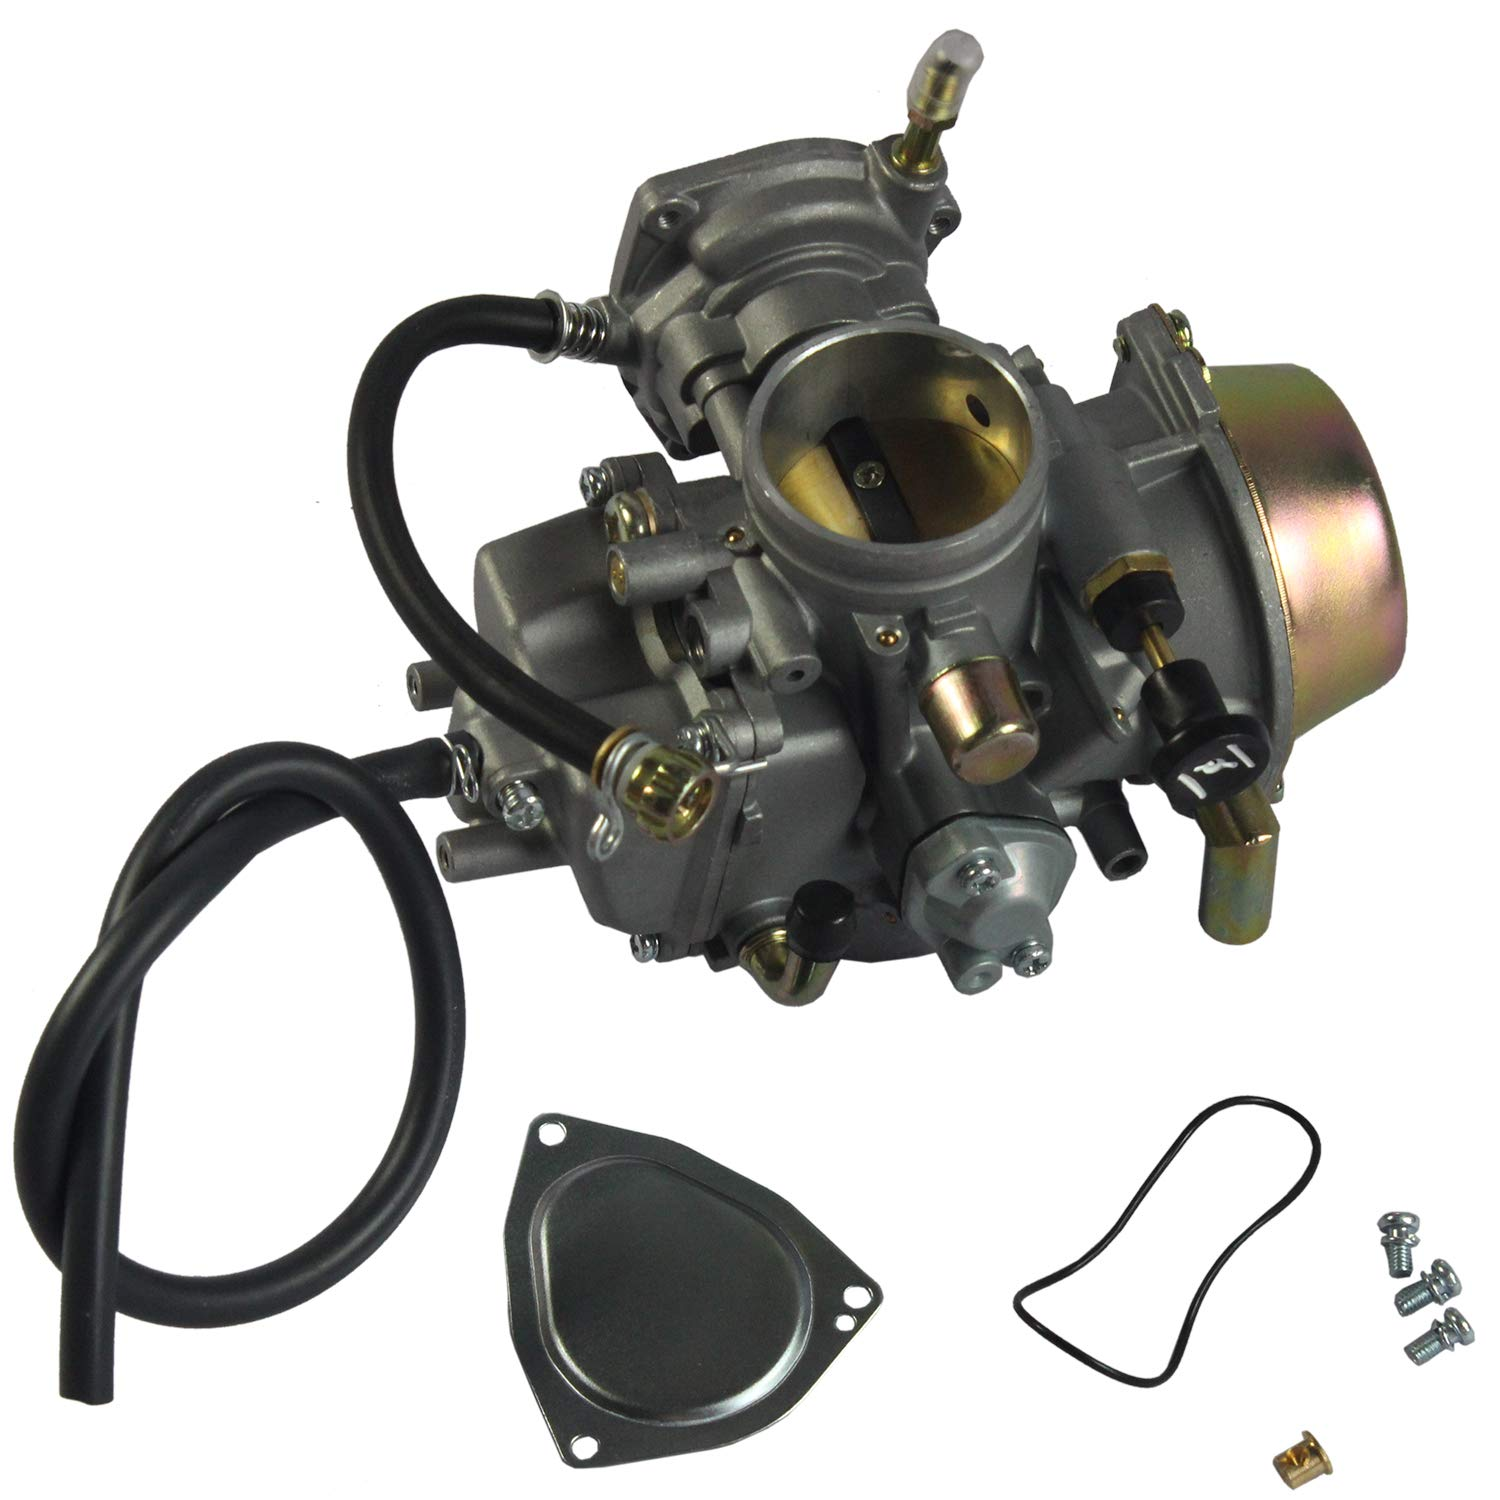 JDMSPEED New Carburetor For Bombardier Can-Am DS650 DS 650 2000-2007